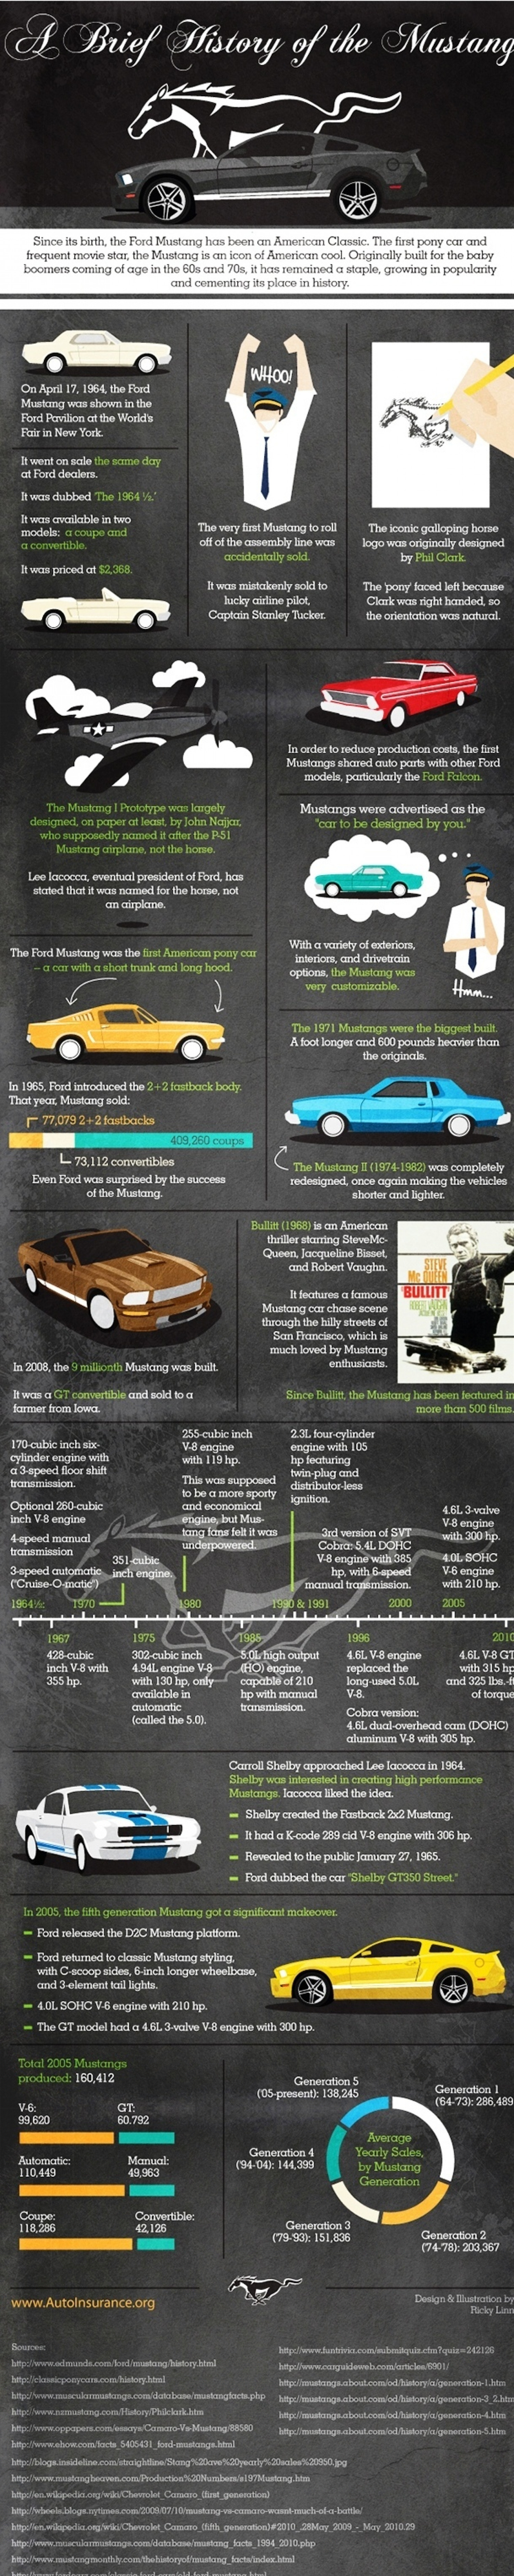 A Brief History Of The Ford Mustang  Infographic